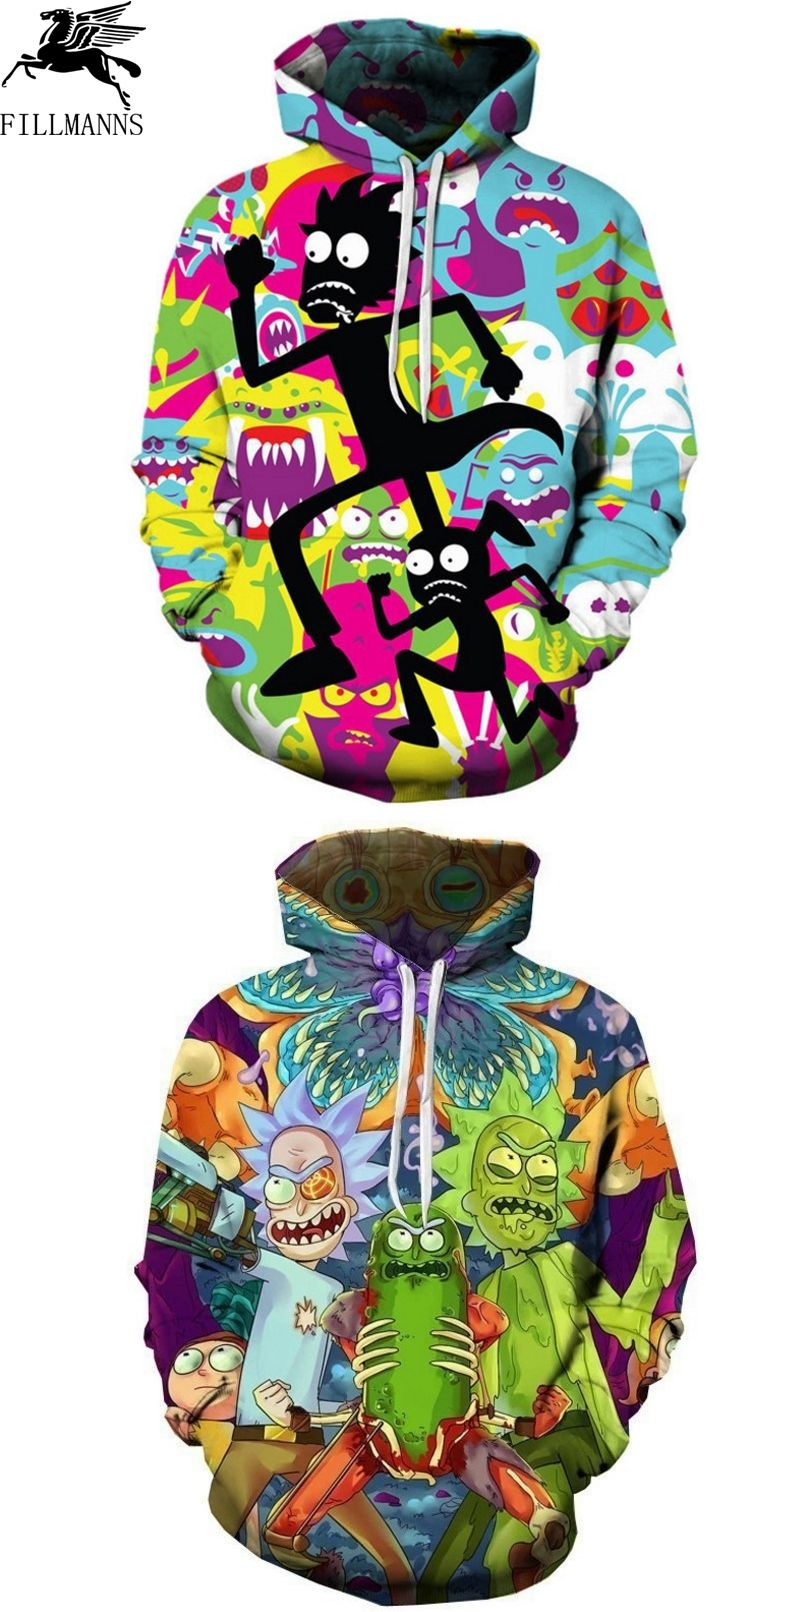 FILLMANNS Sweatshirts Men Cartoon Rick and Morty Fashion hooded Women  Street wear Hipster Pullovers Funny Rick 3d Print Hoodies c120a1ece416